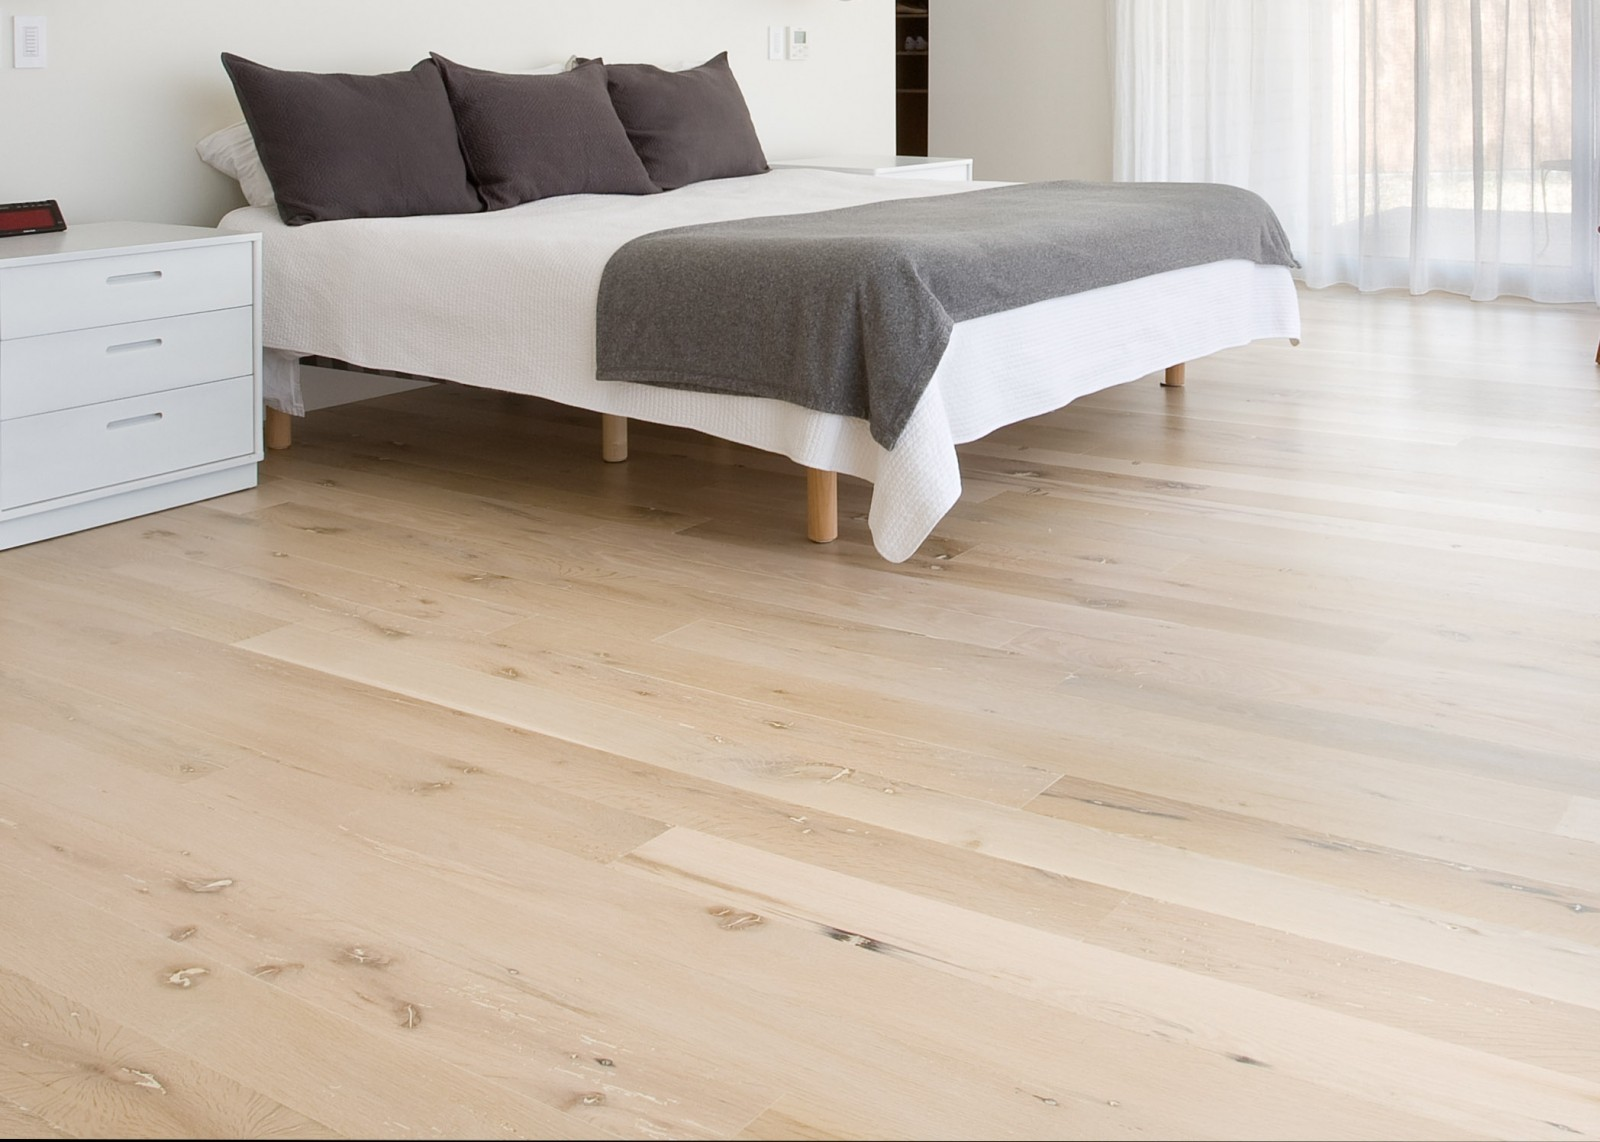 unfinished-hardwood-flooring-Roberts-Flooring-Services